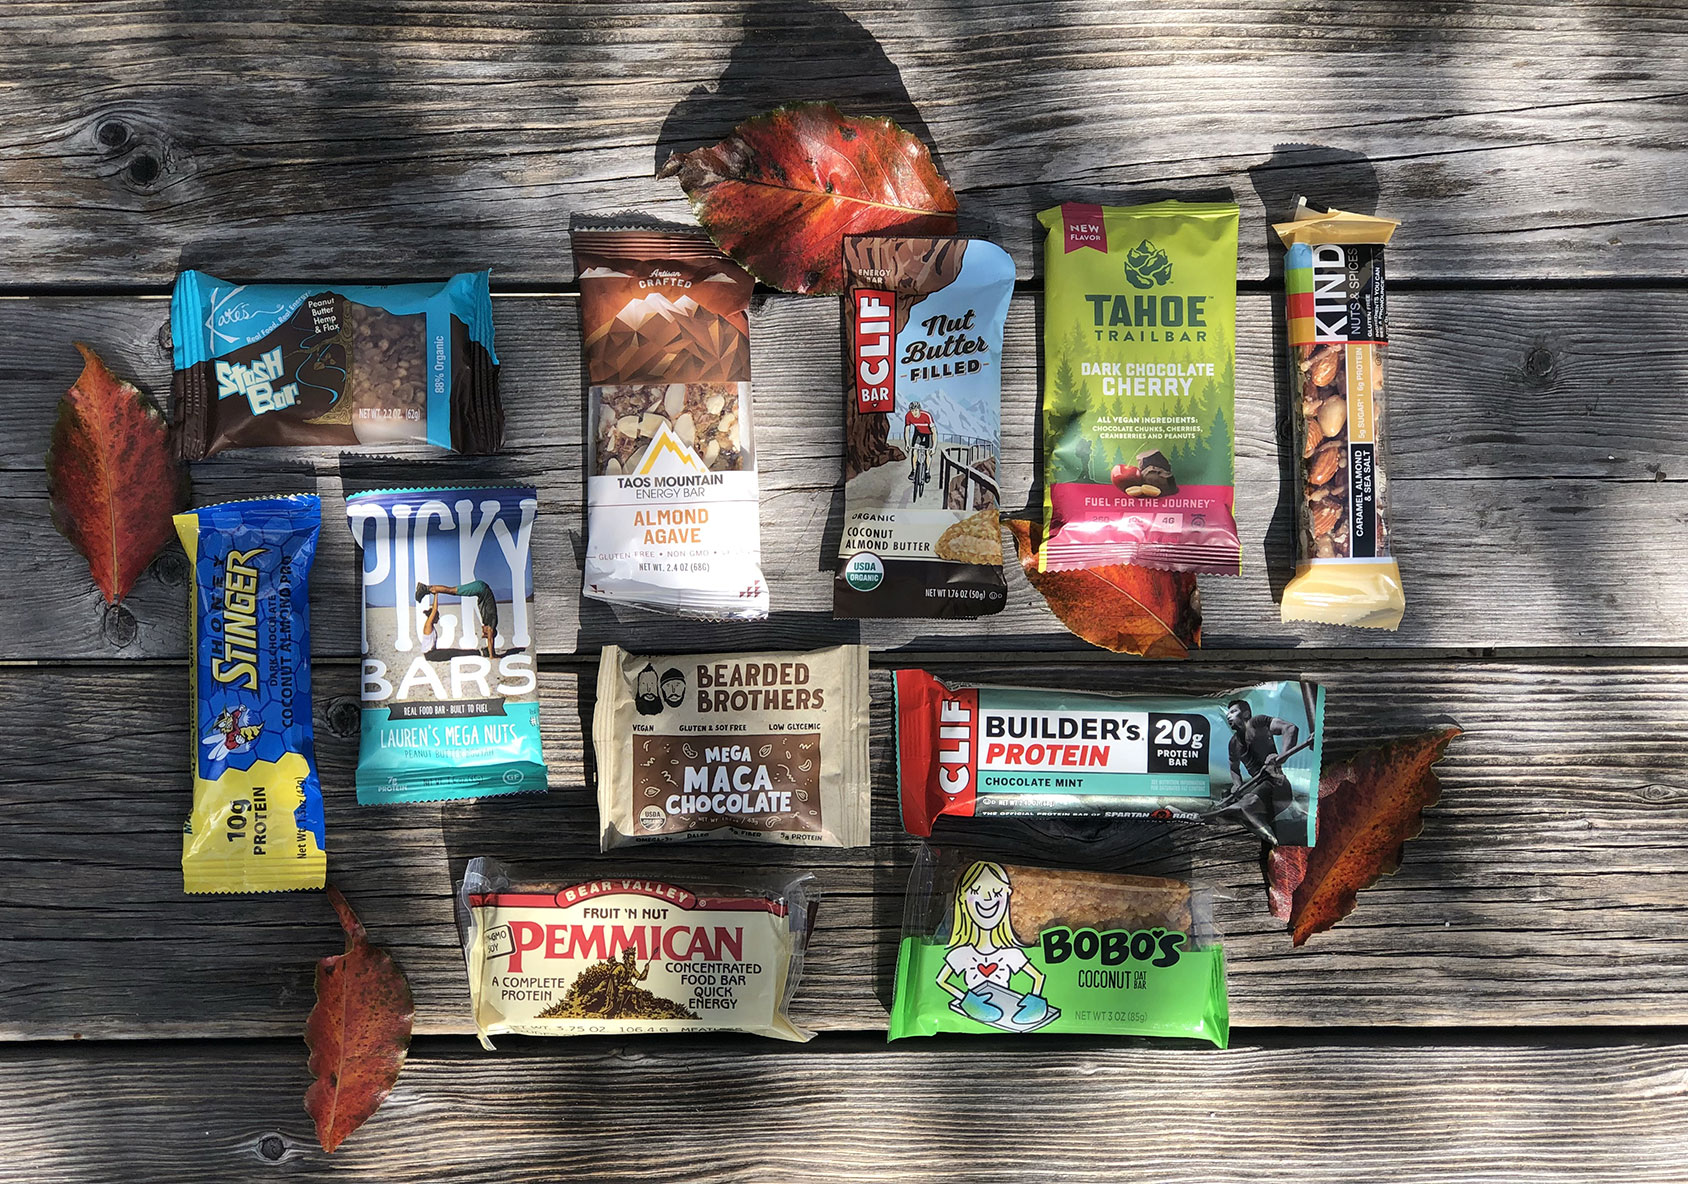 favorite bars from REI